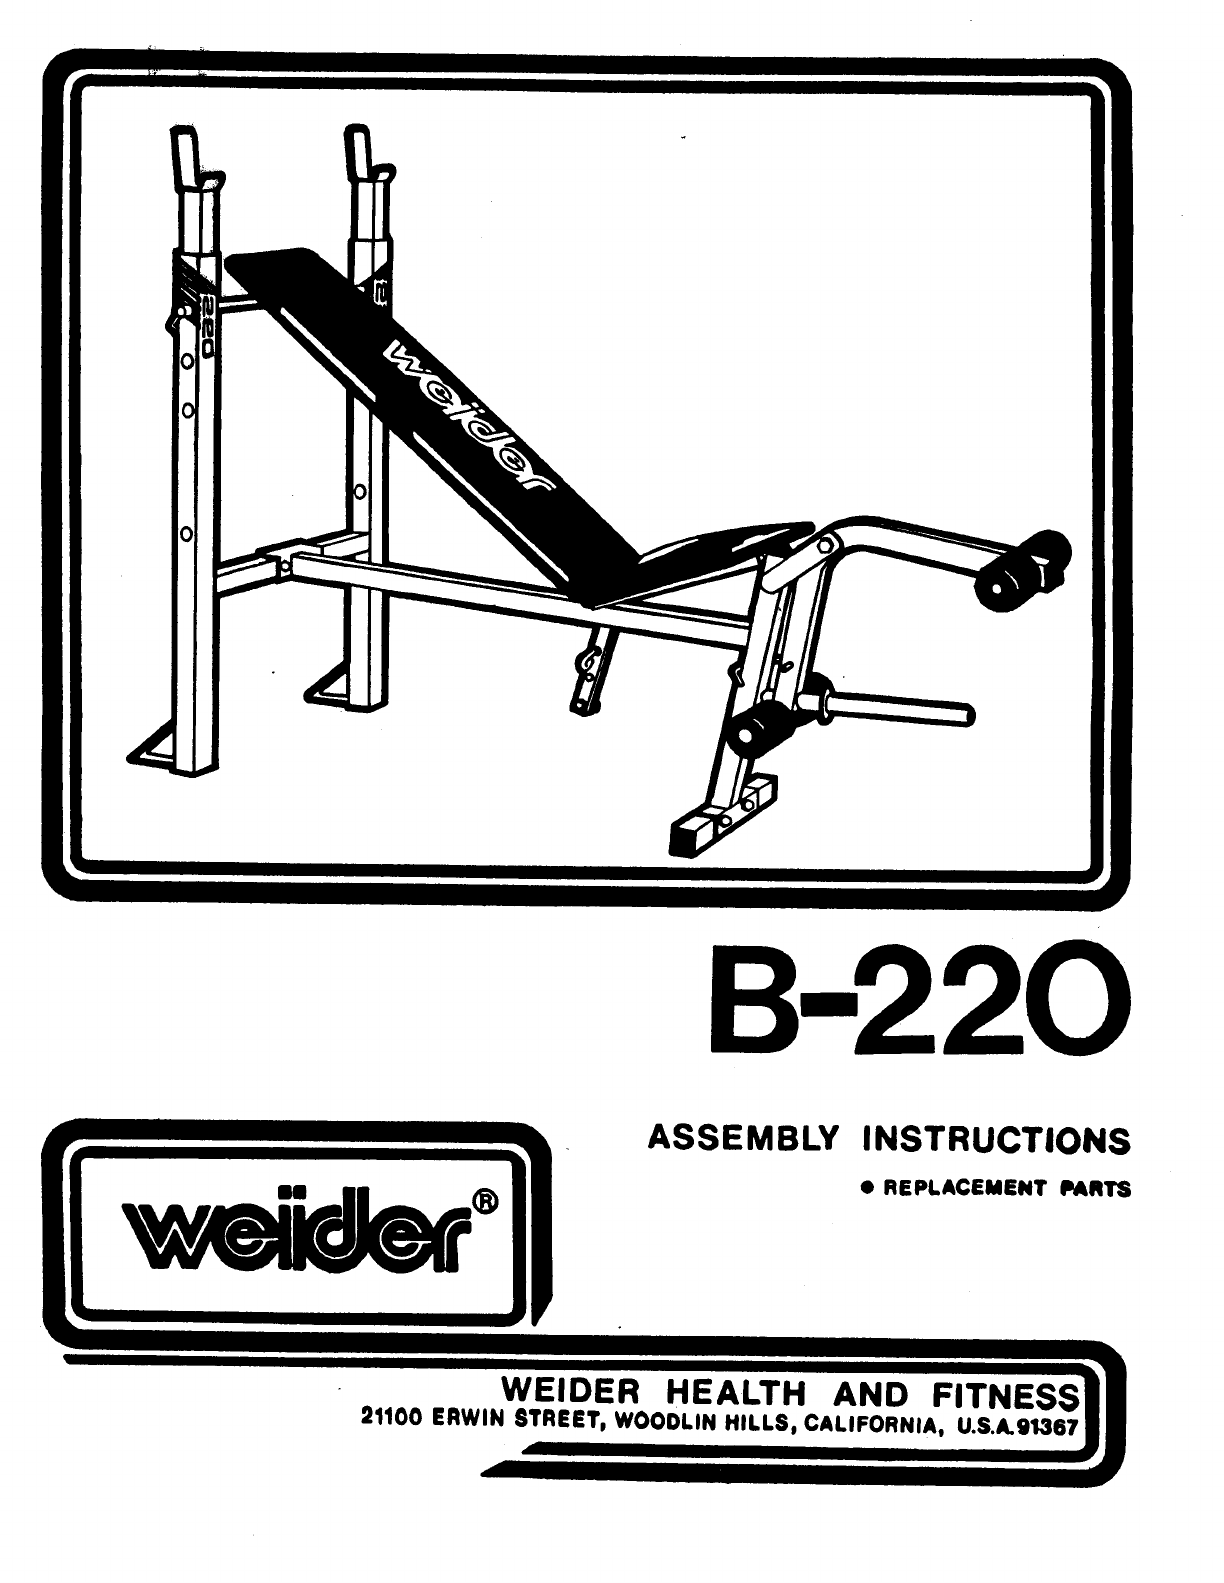 weider fitness equipment b